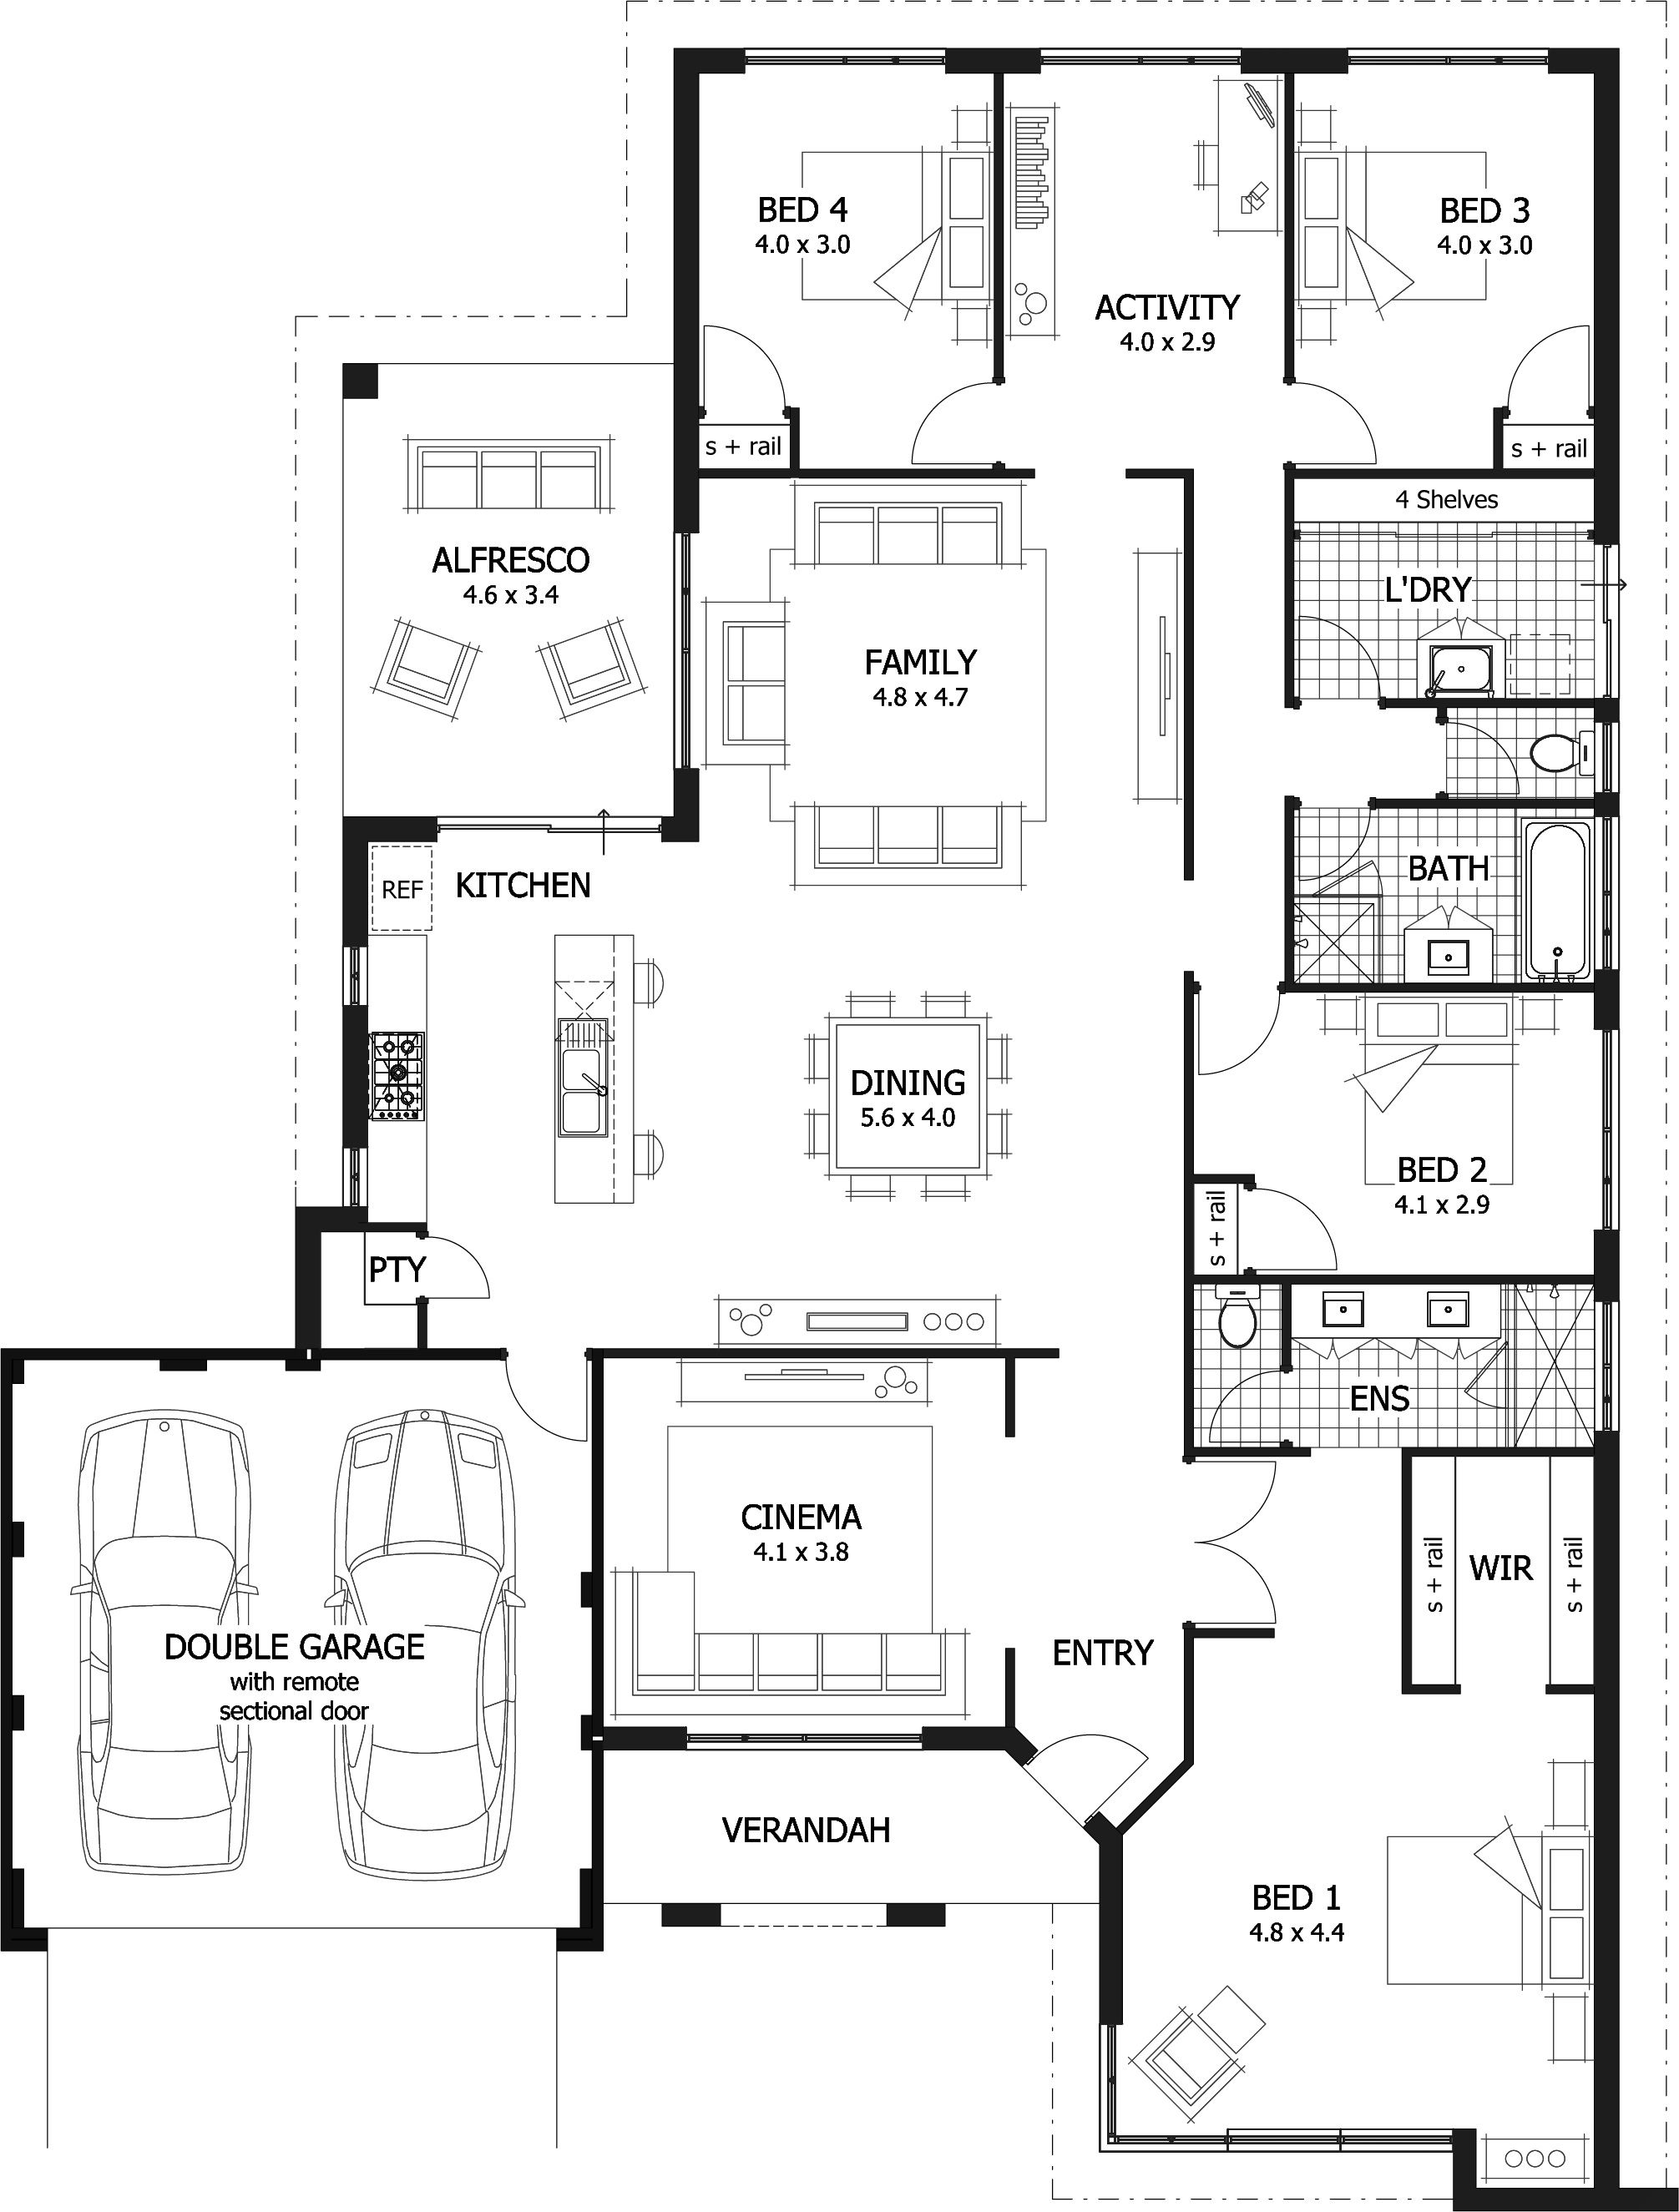 Find a 4 bedroom home that 39 s right for you from our 4 bedroom house blueprints